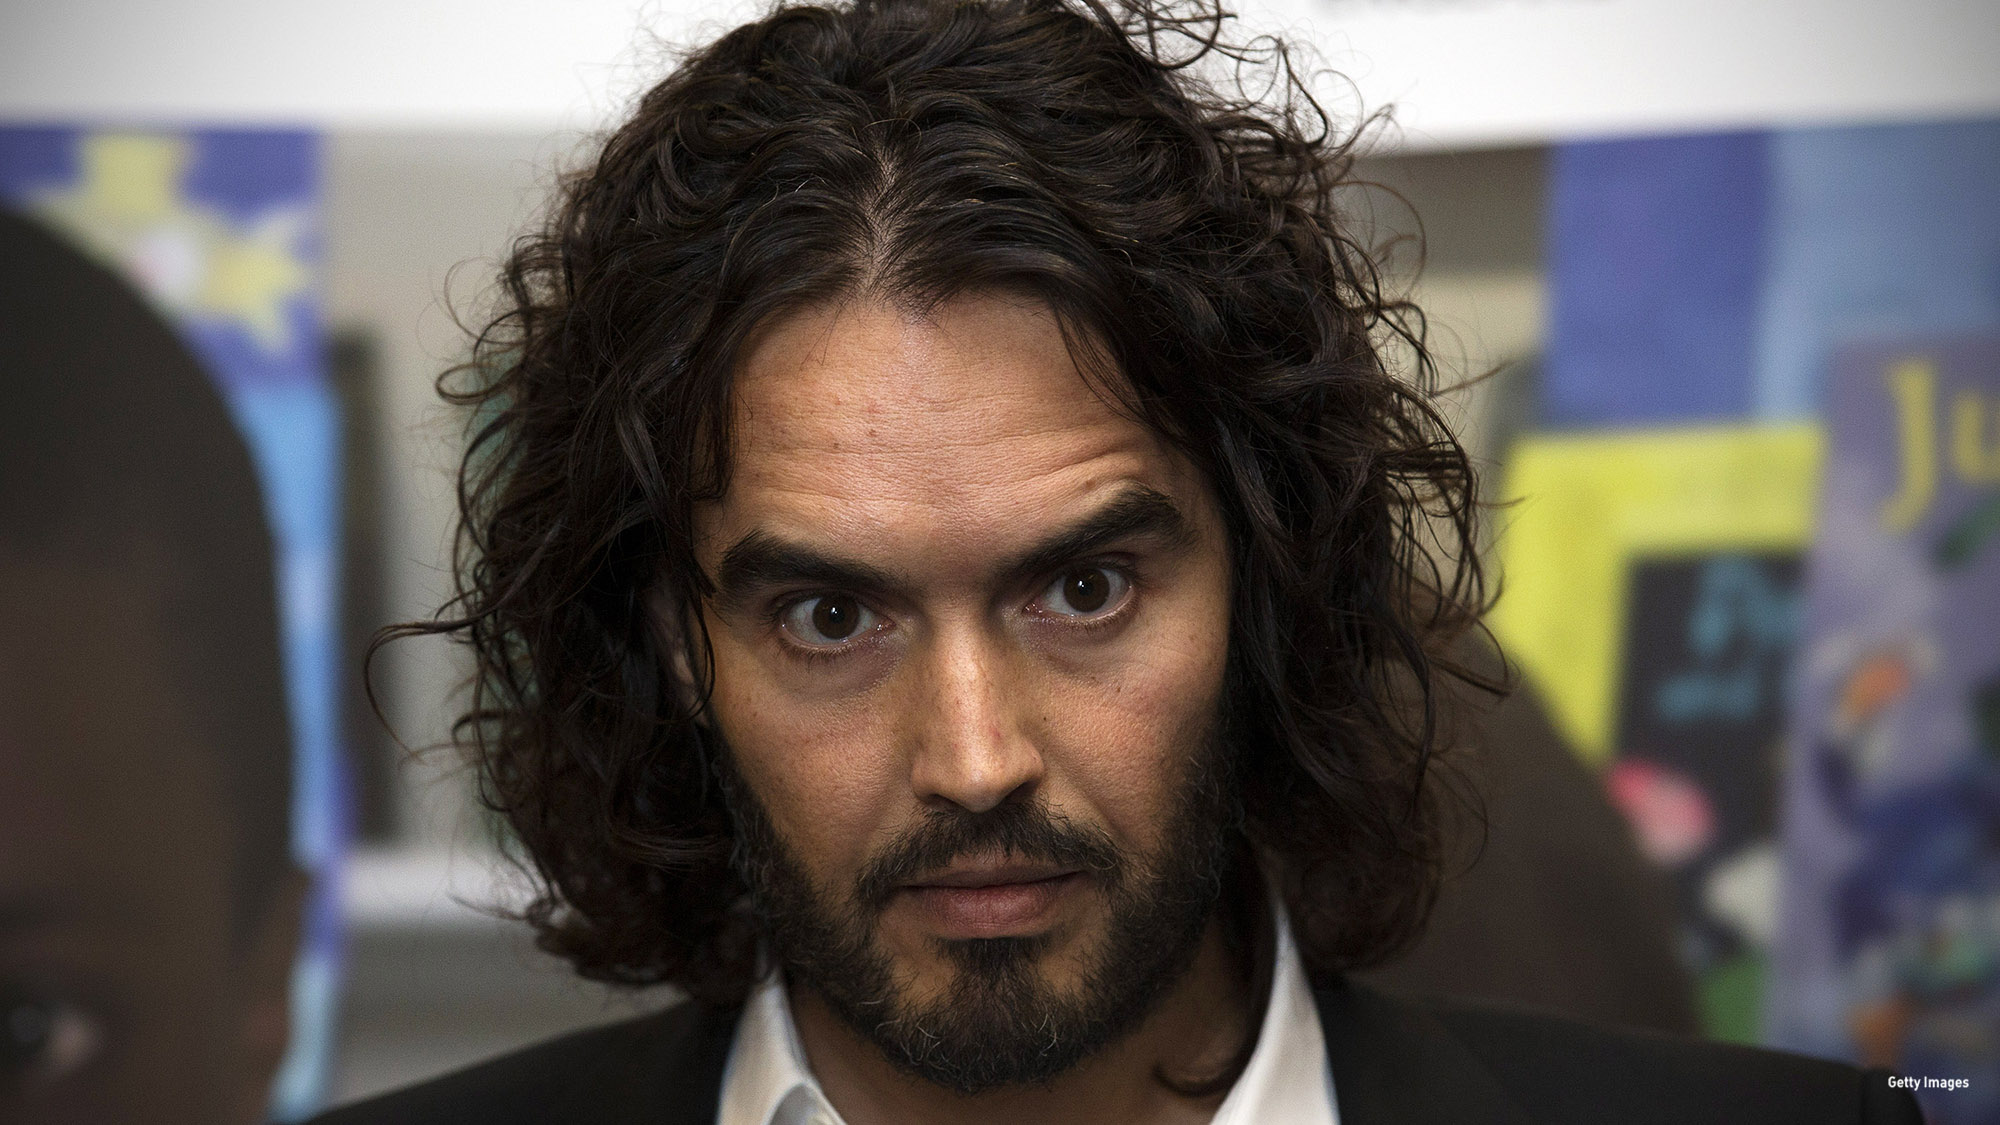 Russell Brand: Recovery: Freedom From Our Addictions